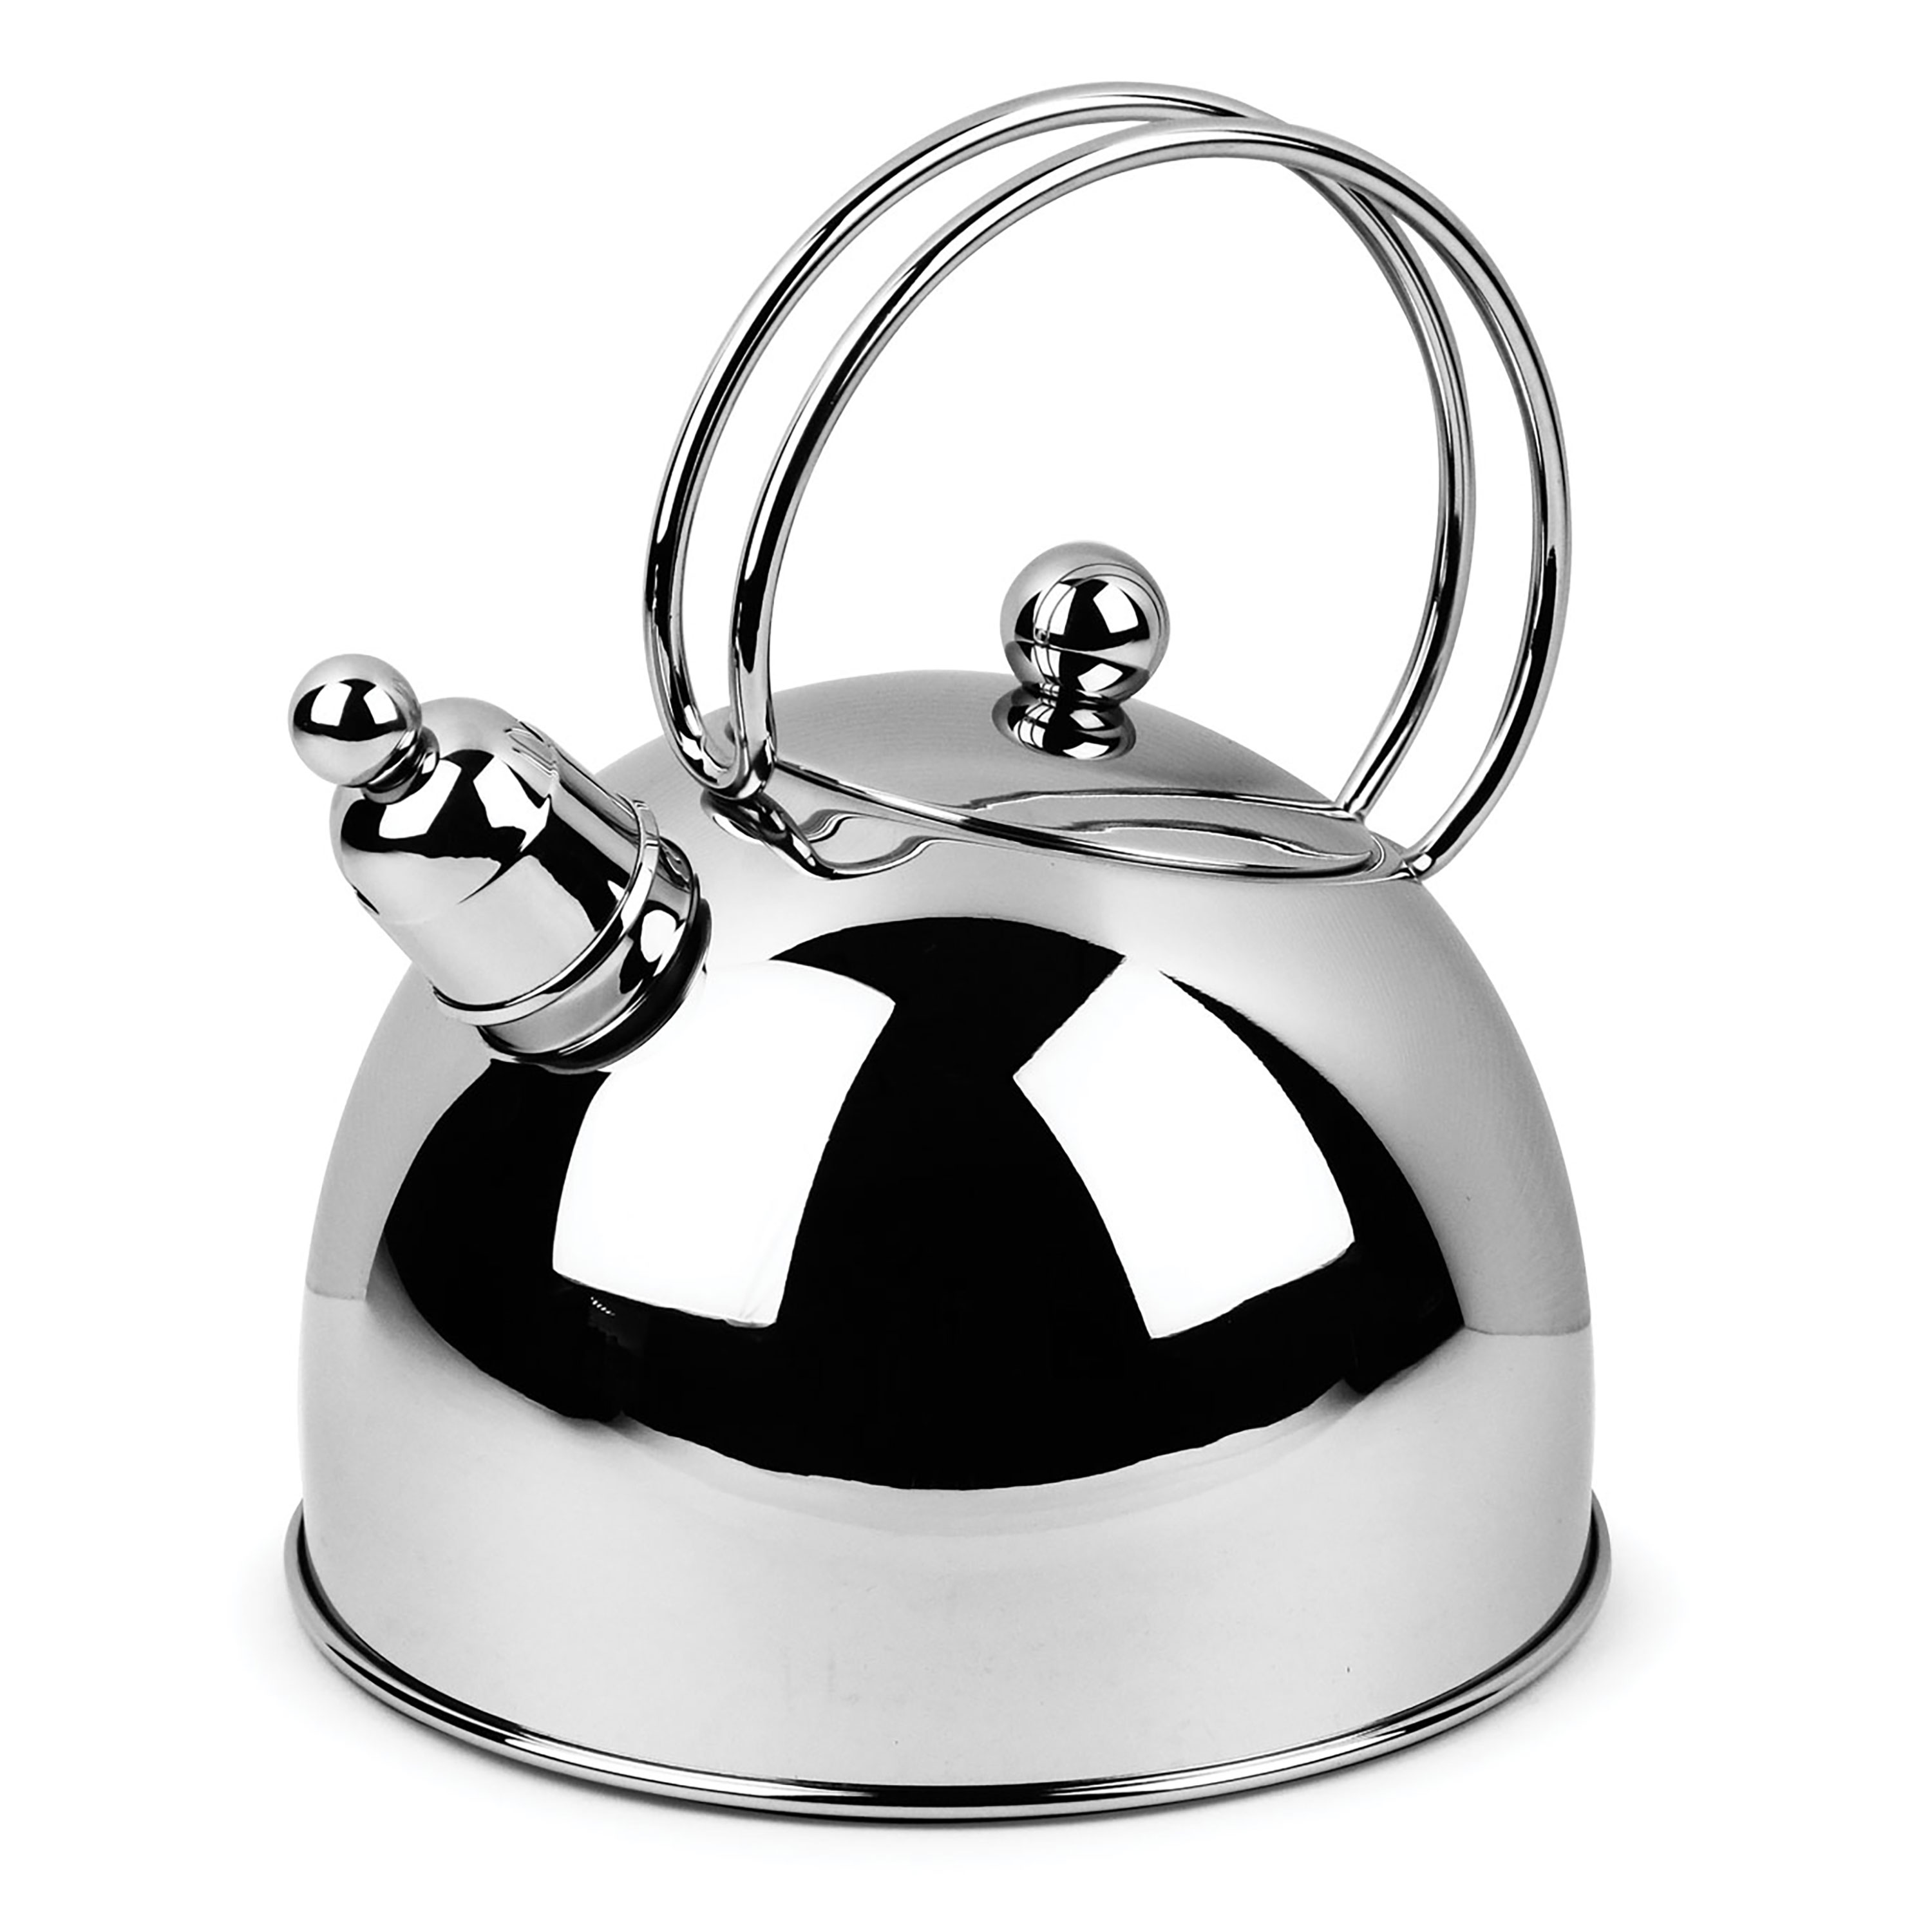 demeyere resto stainless steel whistling tea kettle 26quart cutlery and more - Demeyere